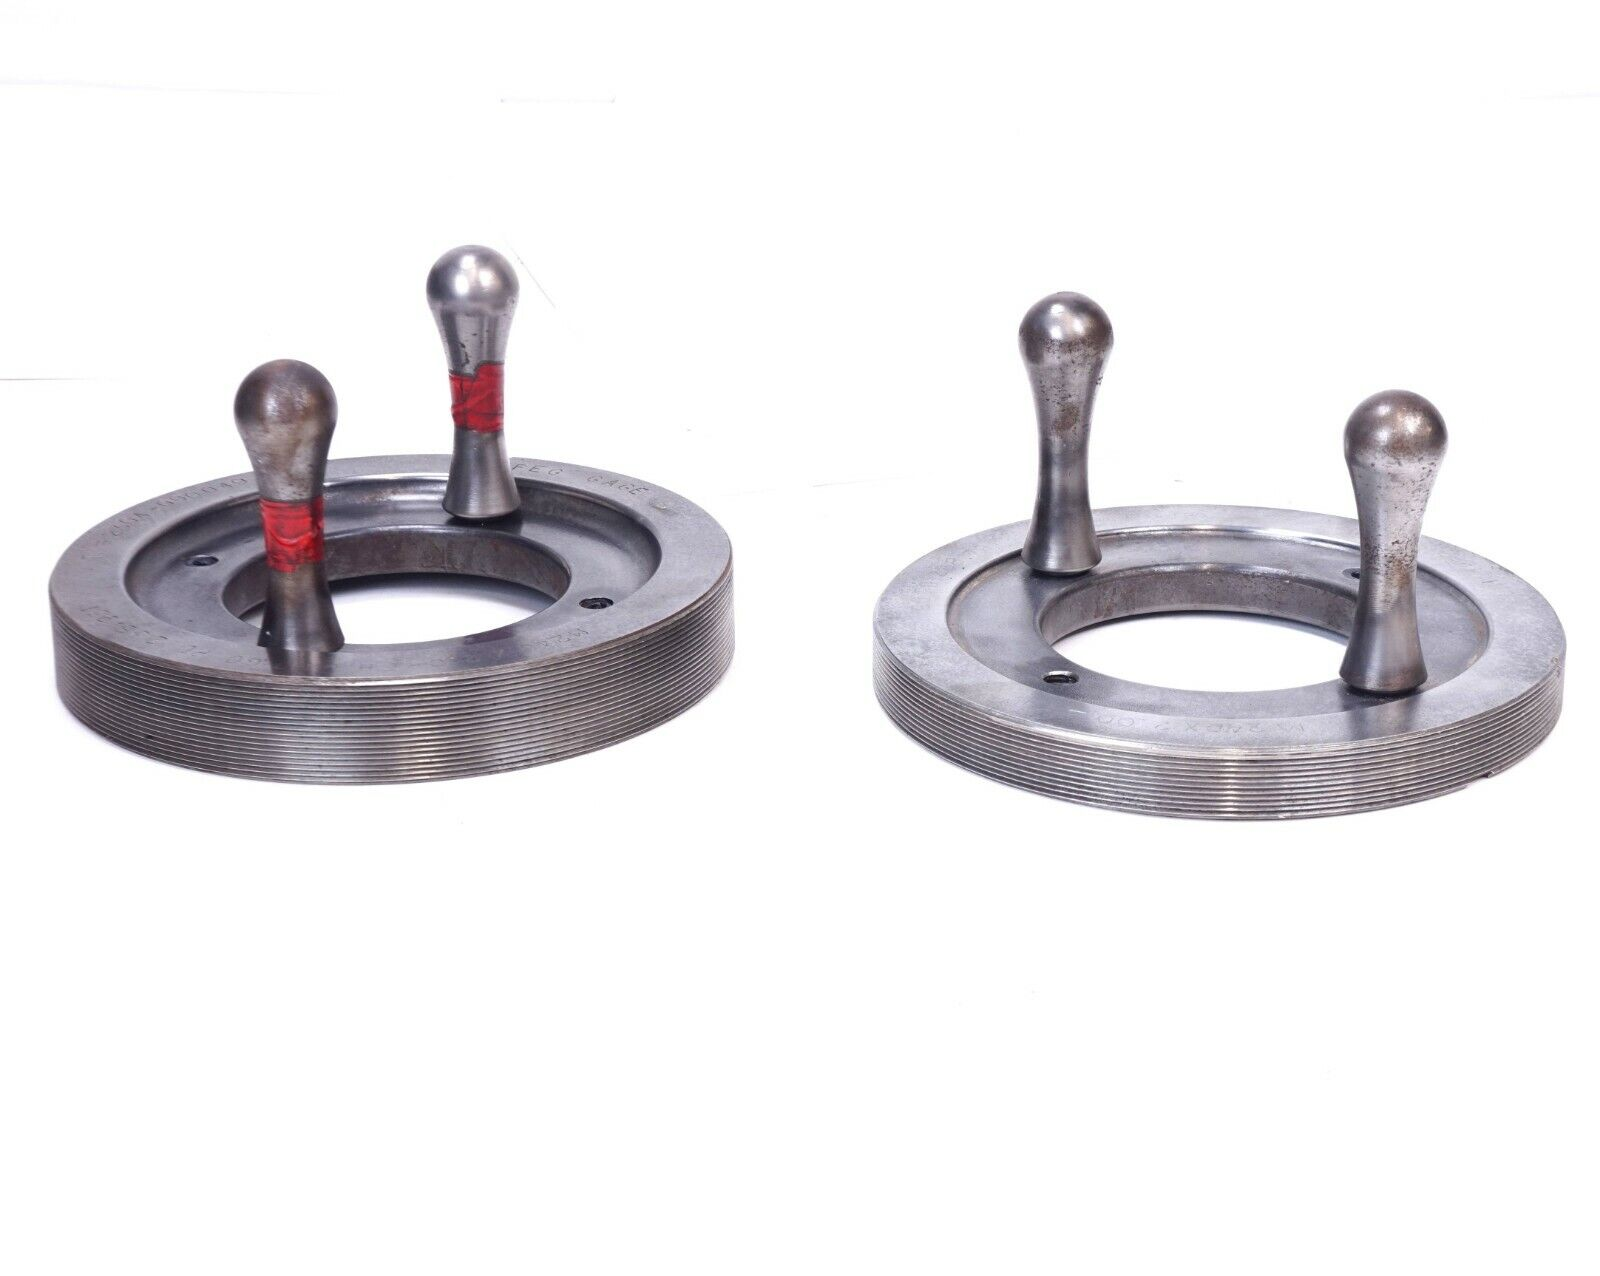 METRIC THREAD PLUG GAGE SET